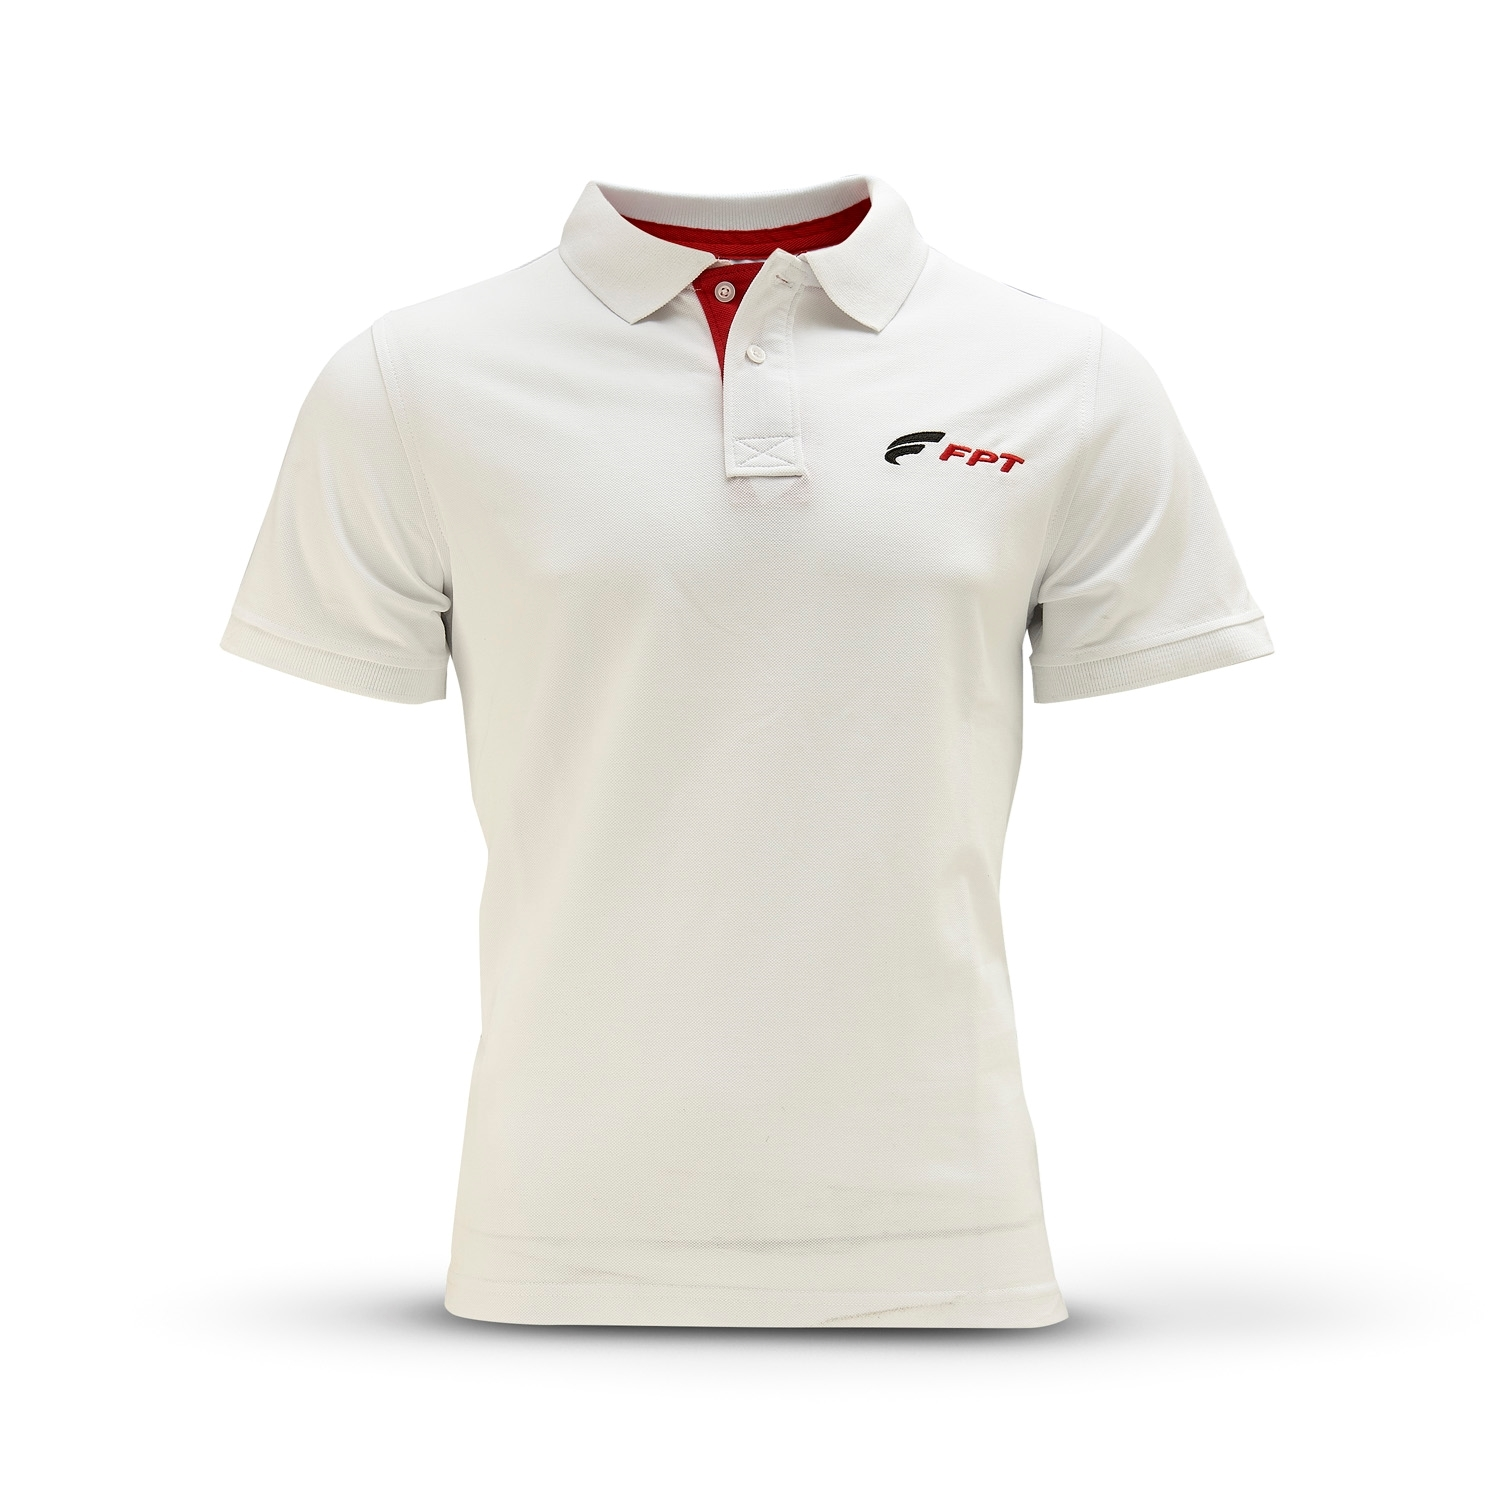 a2e1f4c146 FPT Industrial. CAMISA POLO MASCULINA M C - BRANCA